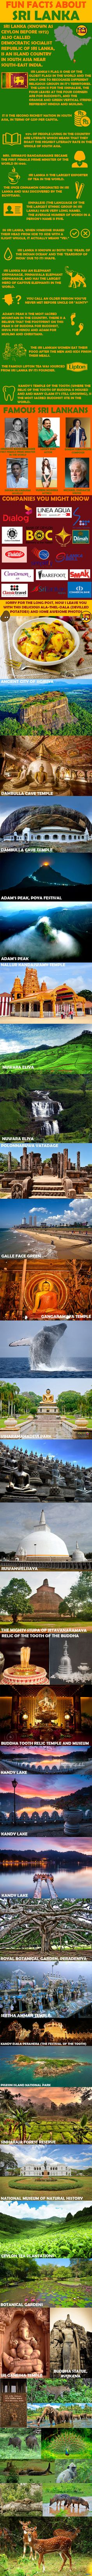 Fun Facts About Sri Lanka - 9GAG